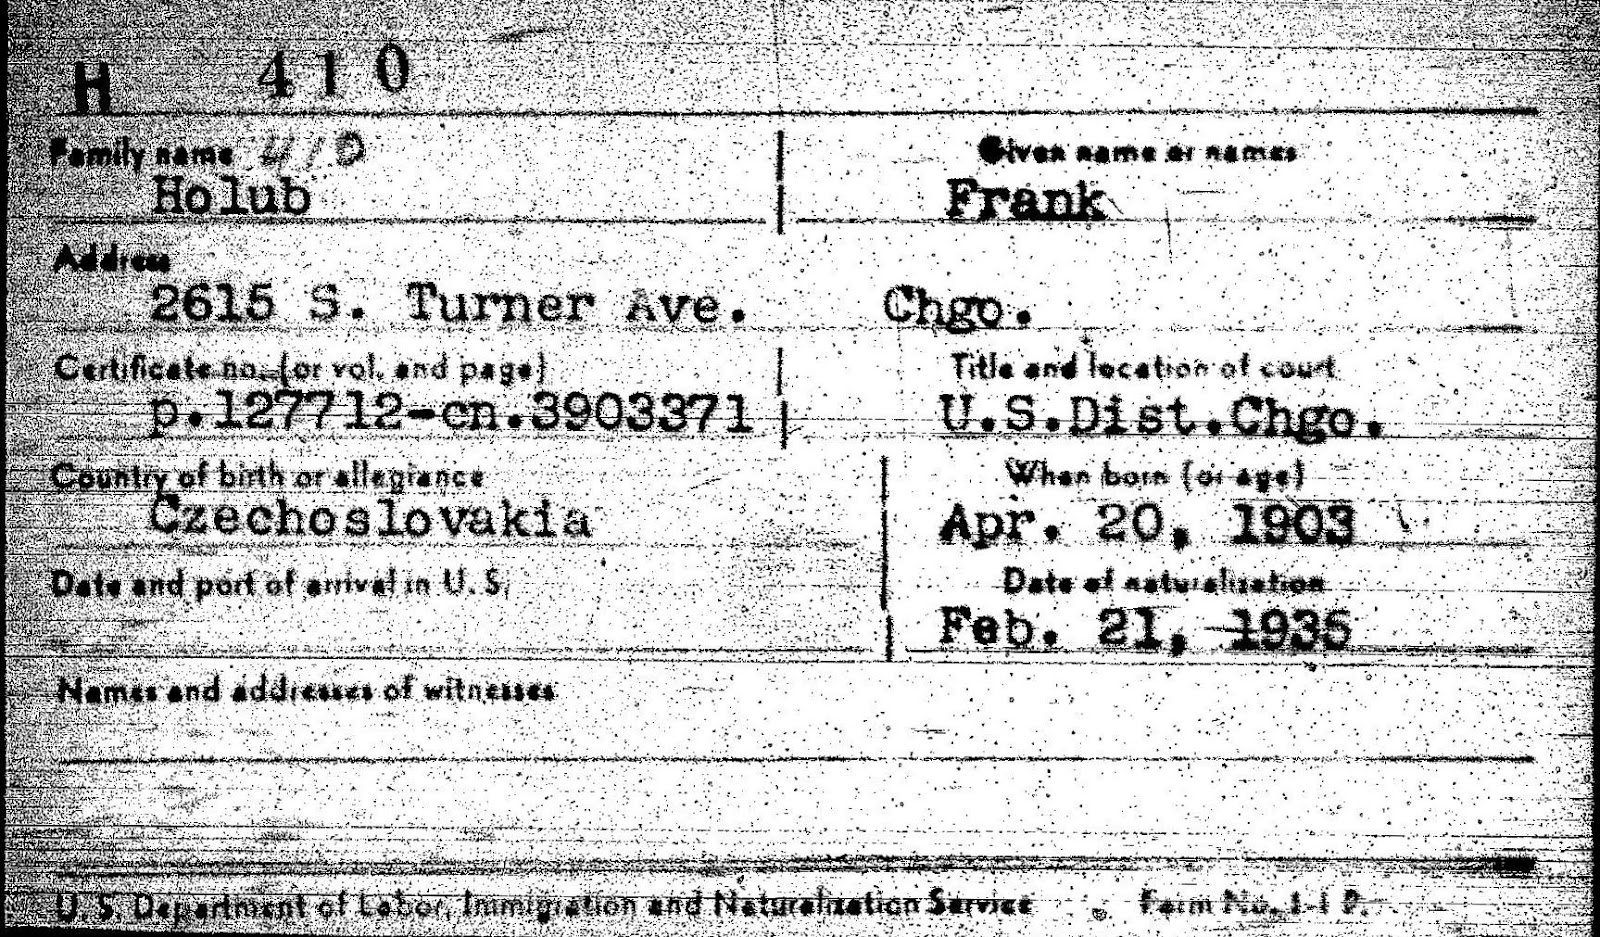 Pat spears ancestor detector get familiar with uscis home of us but i wondered if a file existed for frank holub that might have more information than just the certificate could there be first papers declaration of 1betcityfo Choice Image